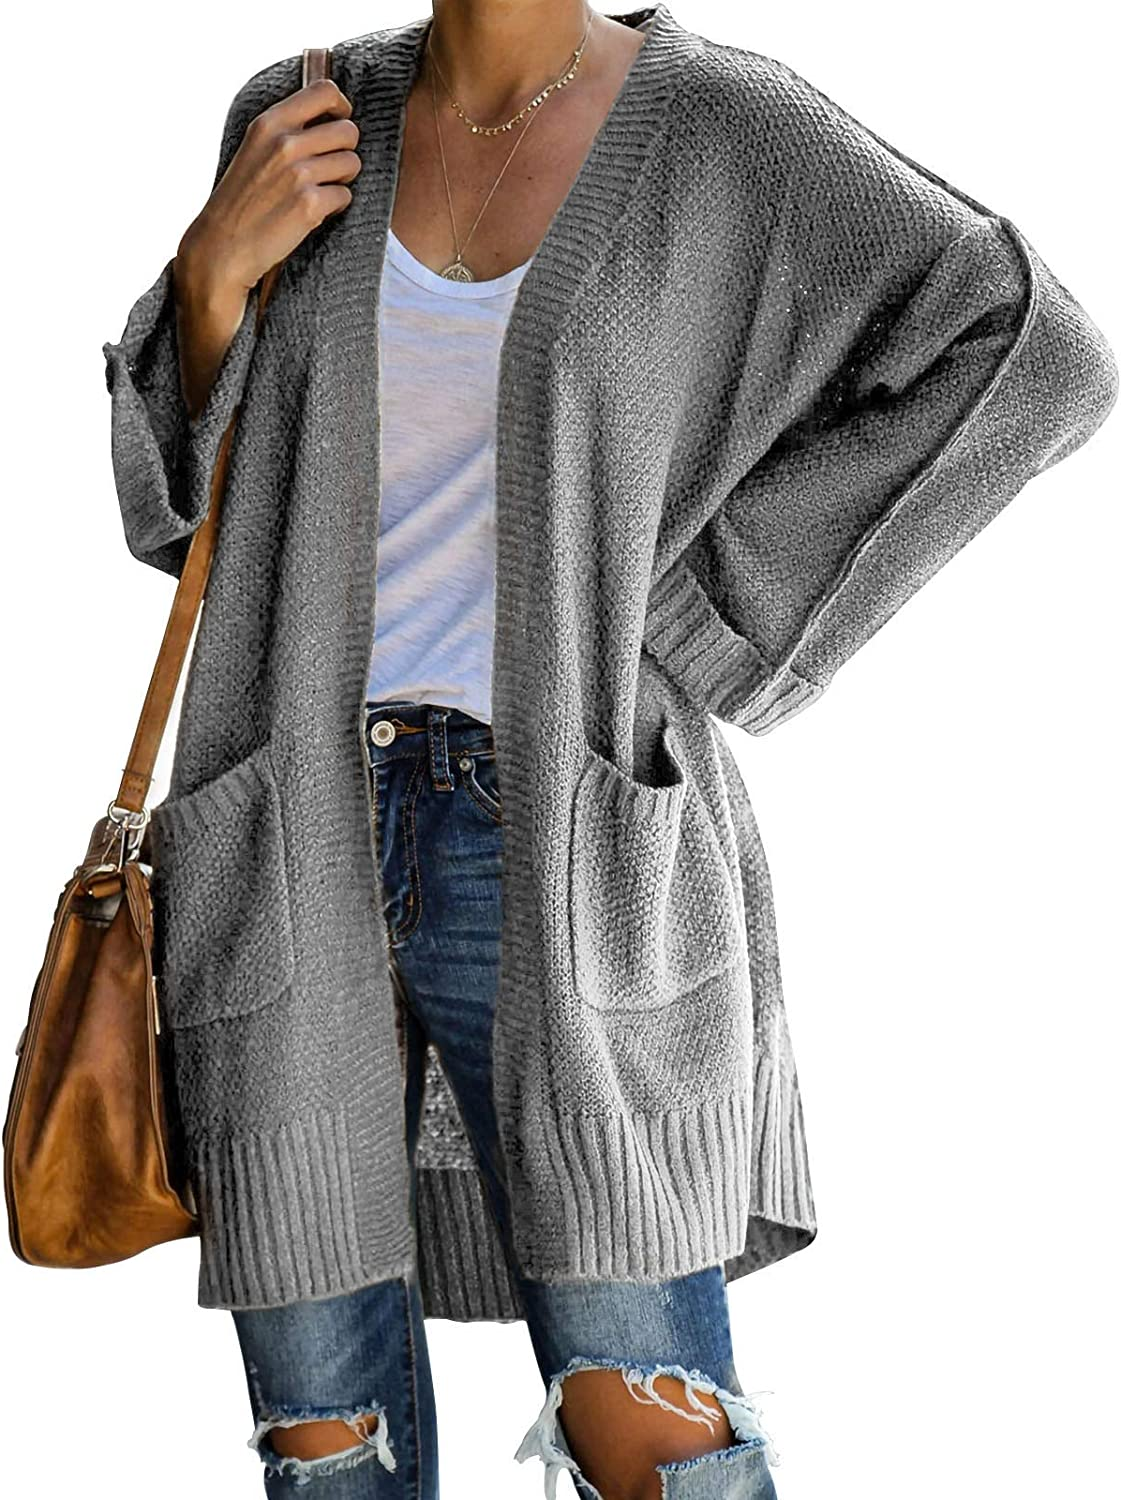 Womens Color Block Open Front Long Cardigans Plus Size Oversized Long Sleeve Chunky Sweaters Outwear with Pockets